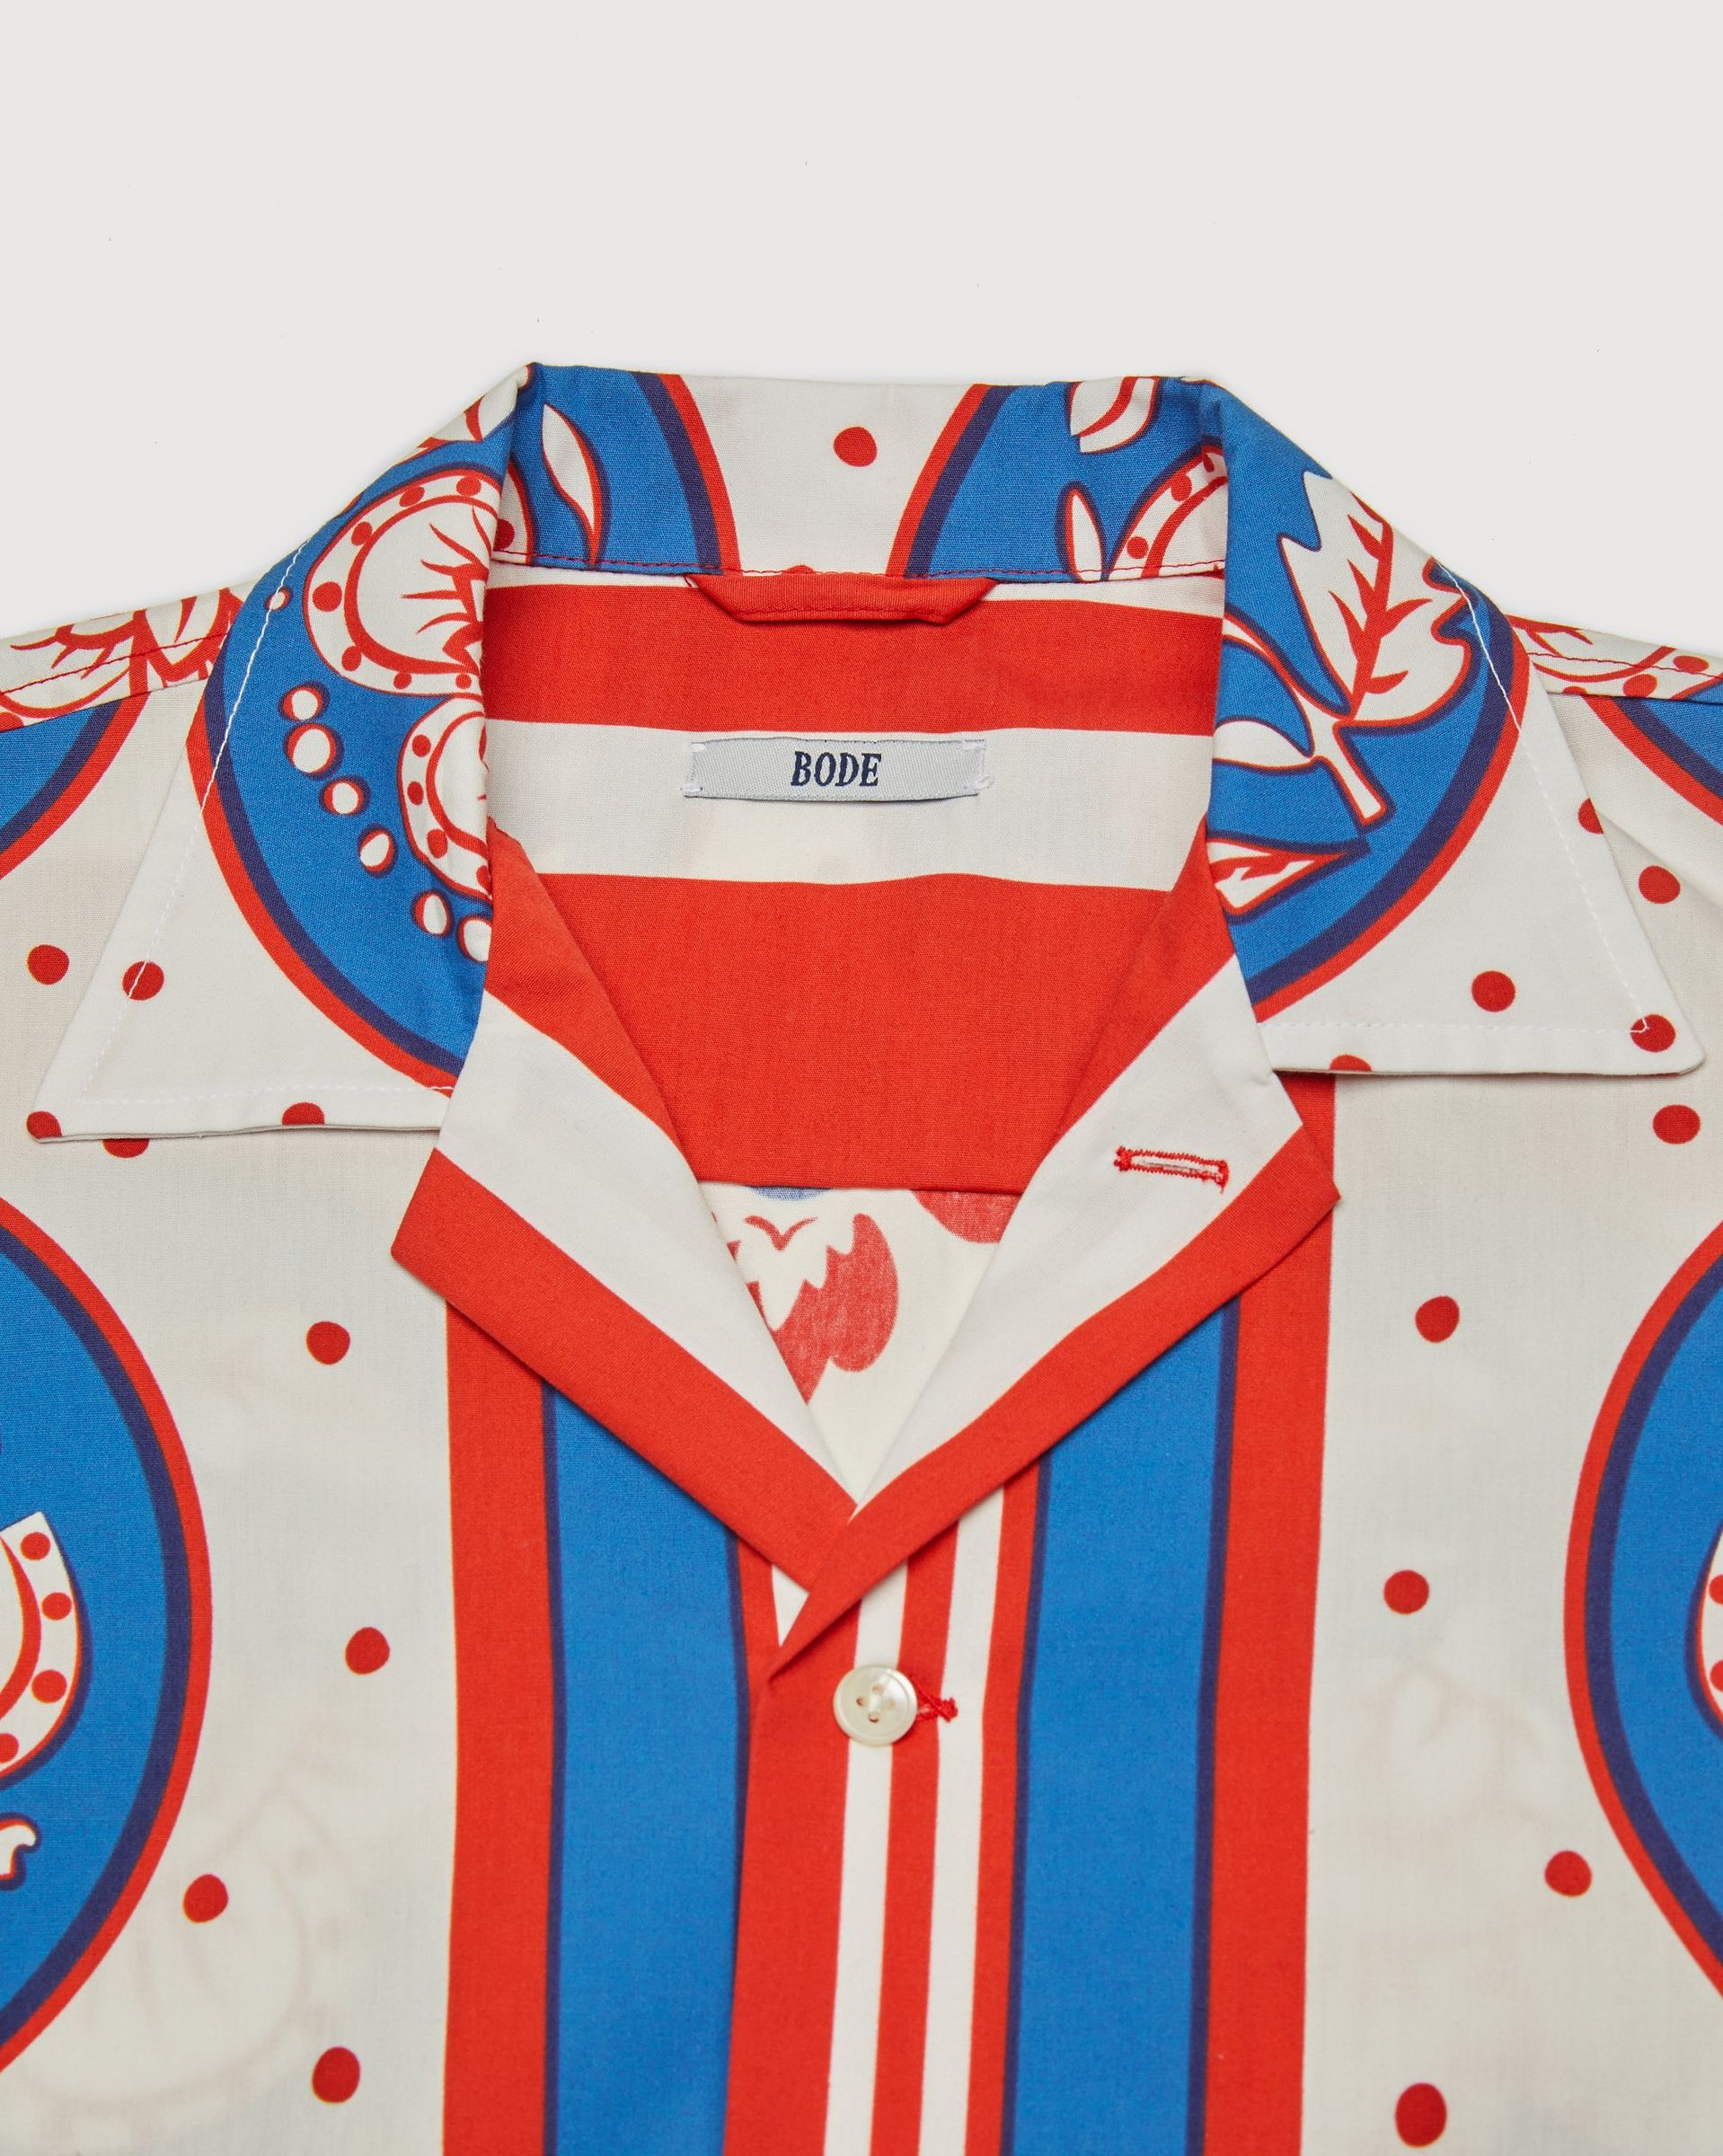 BODE - Oversized Block Print Shirt Blue Red - Image 4